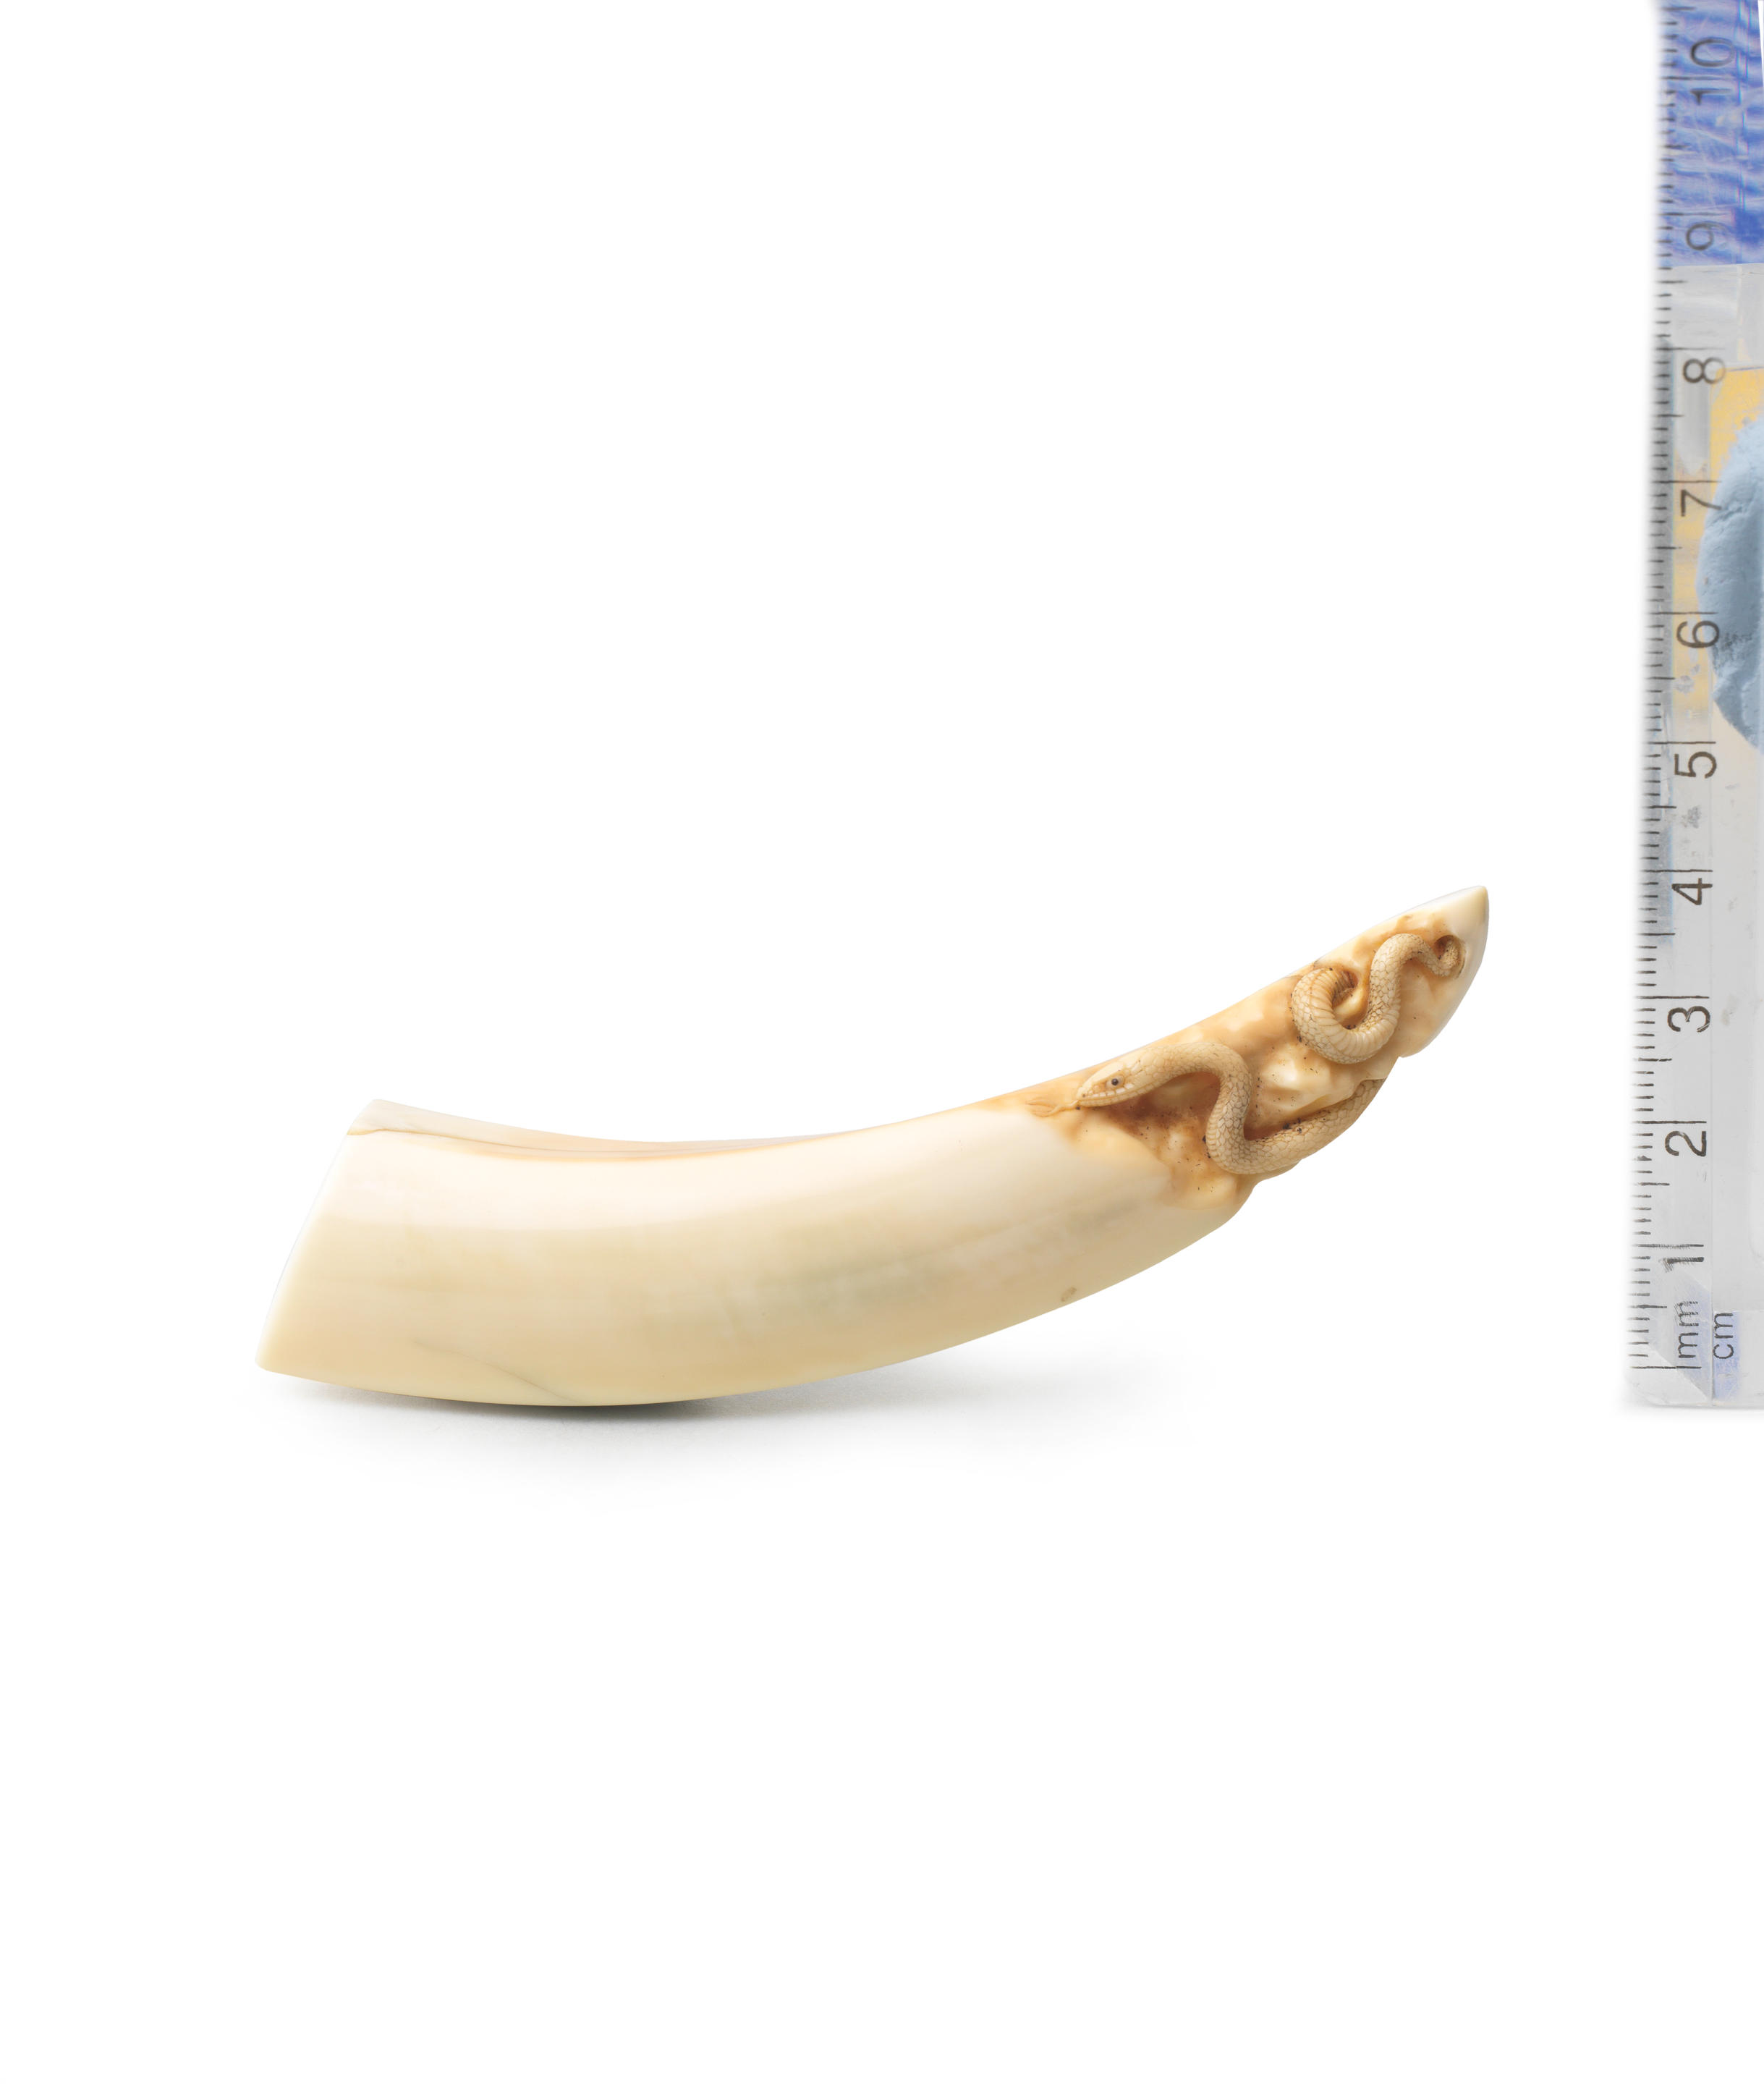 A boar-tusk netsuke with a snake